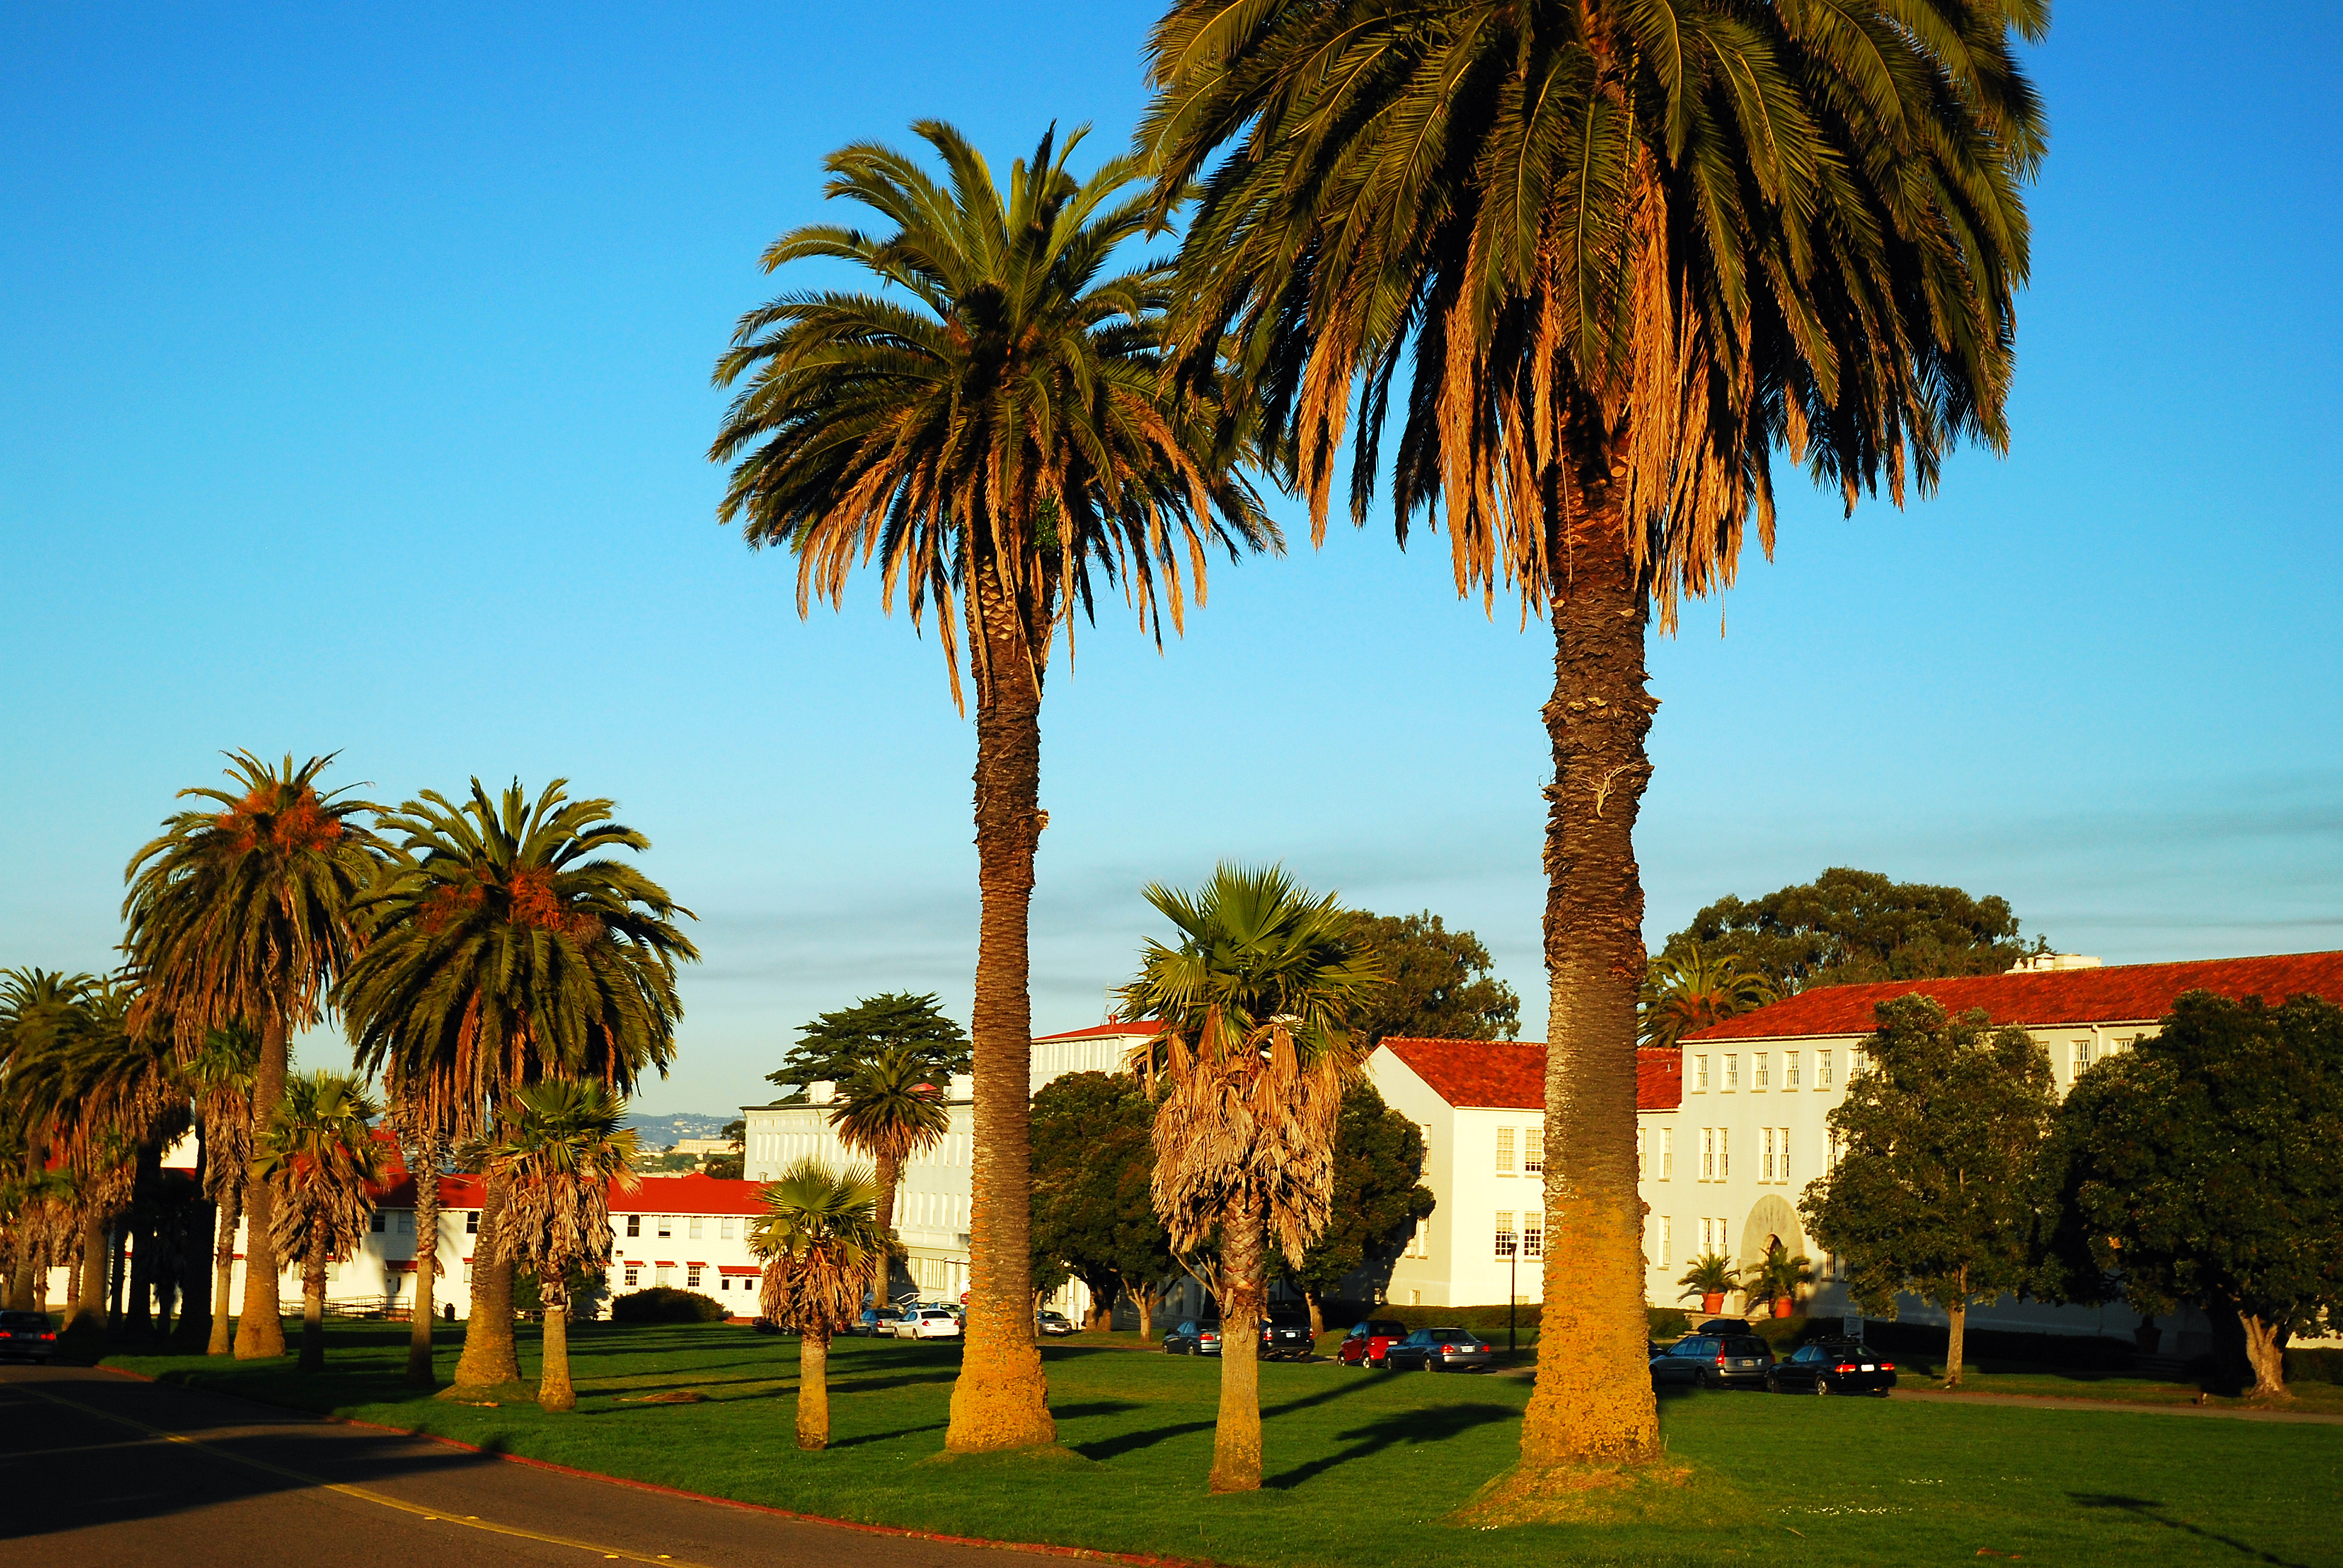 Palm trees and buildings with tile roofs in the Presidio.